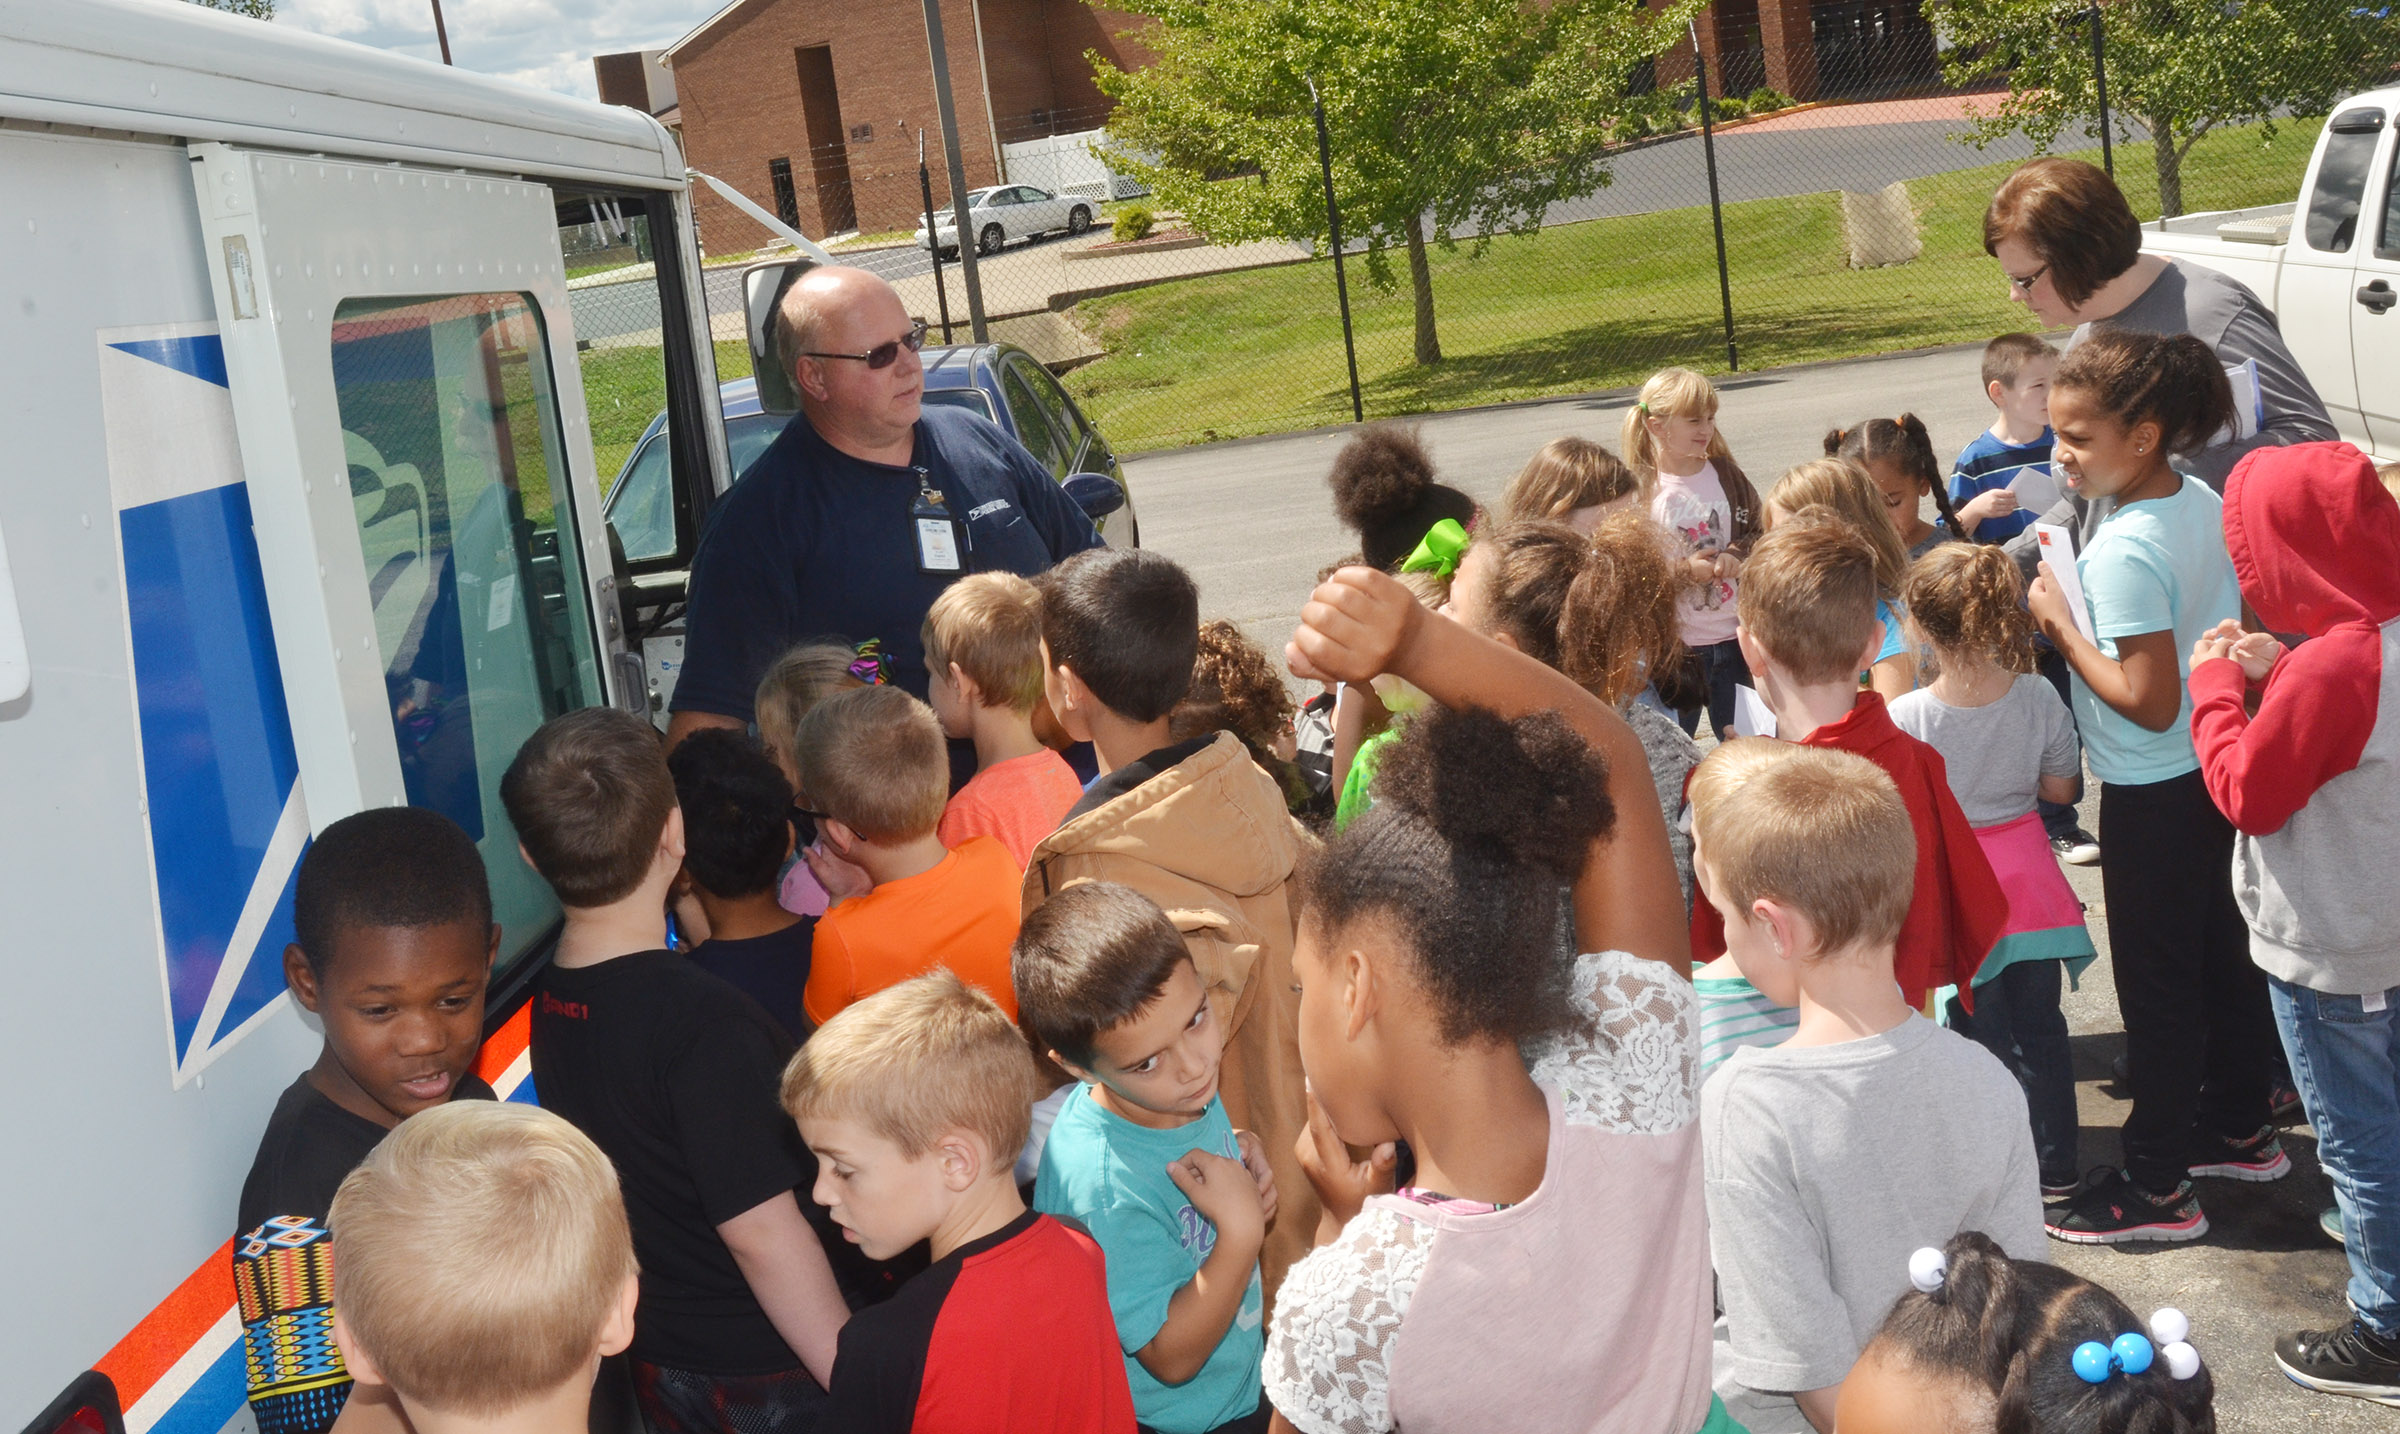 Campbellsville Post Office employee Scott Darst shows CES second-graders the inside of a mail truck.